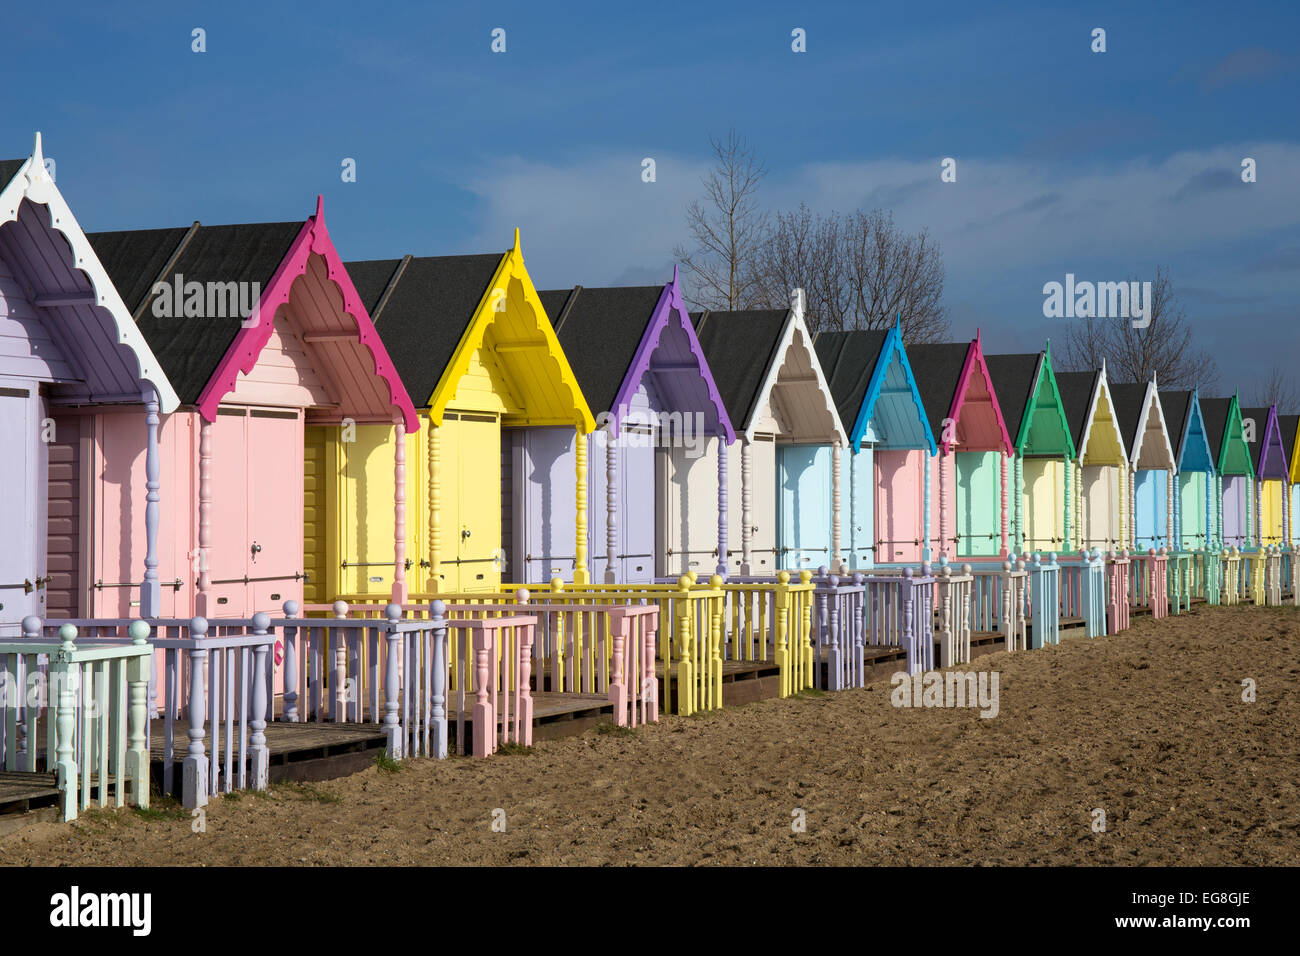 Colourful Beach huts on Mersea Island,Essex,England - Stock Image